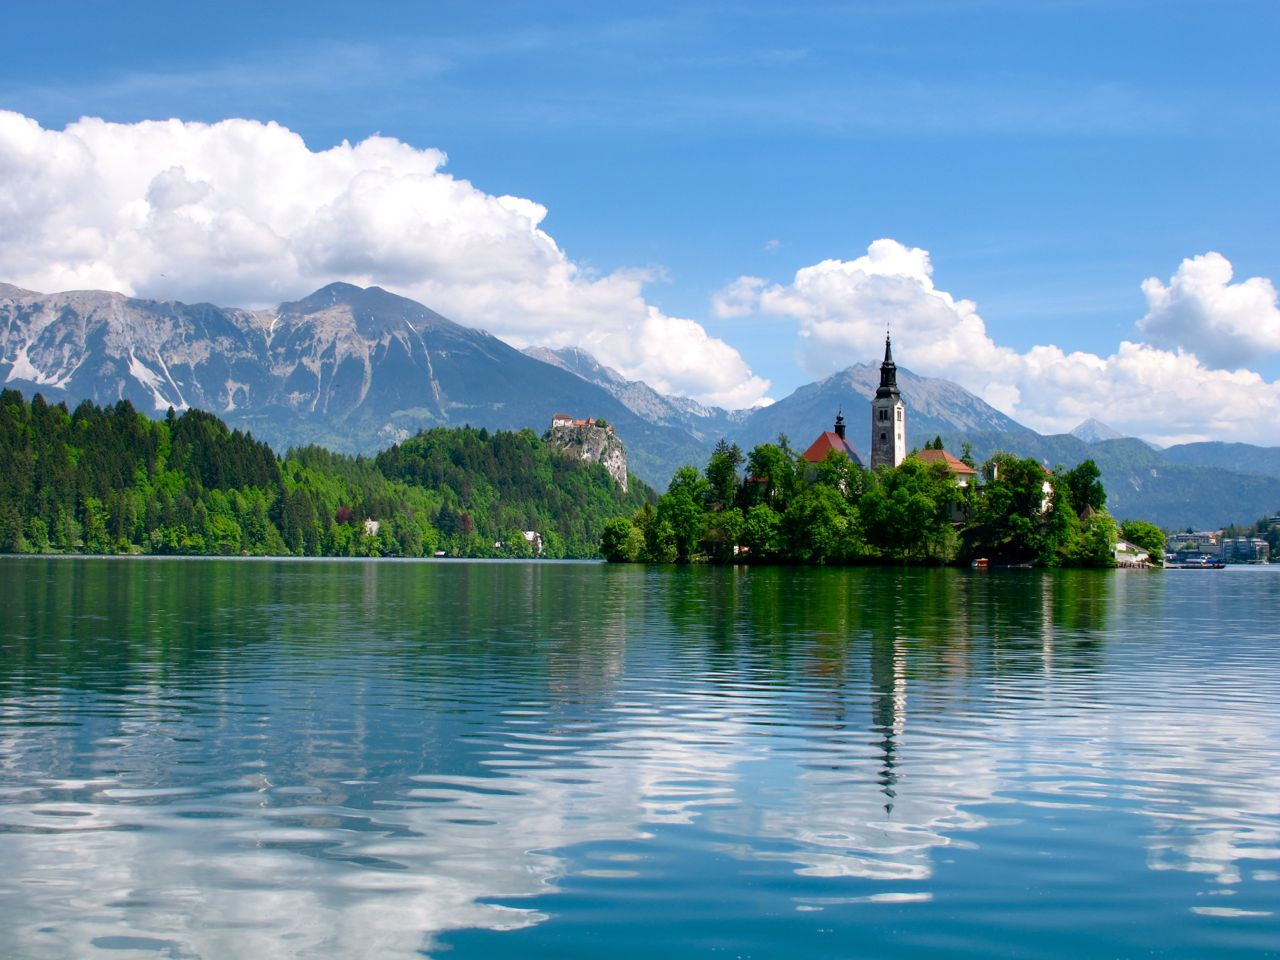 Copy of lake bled